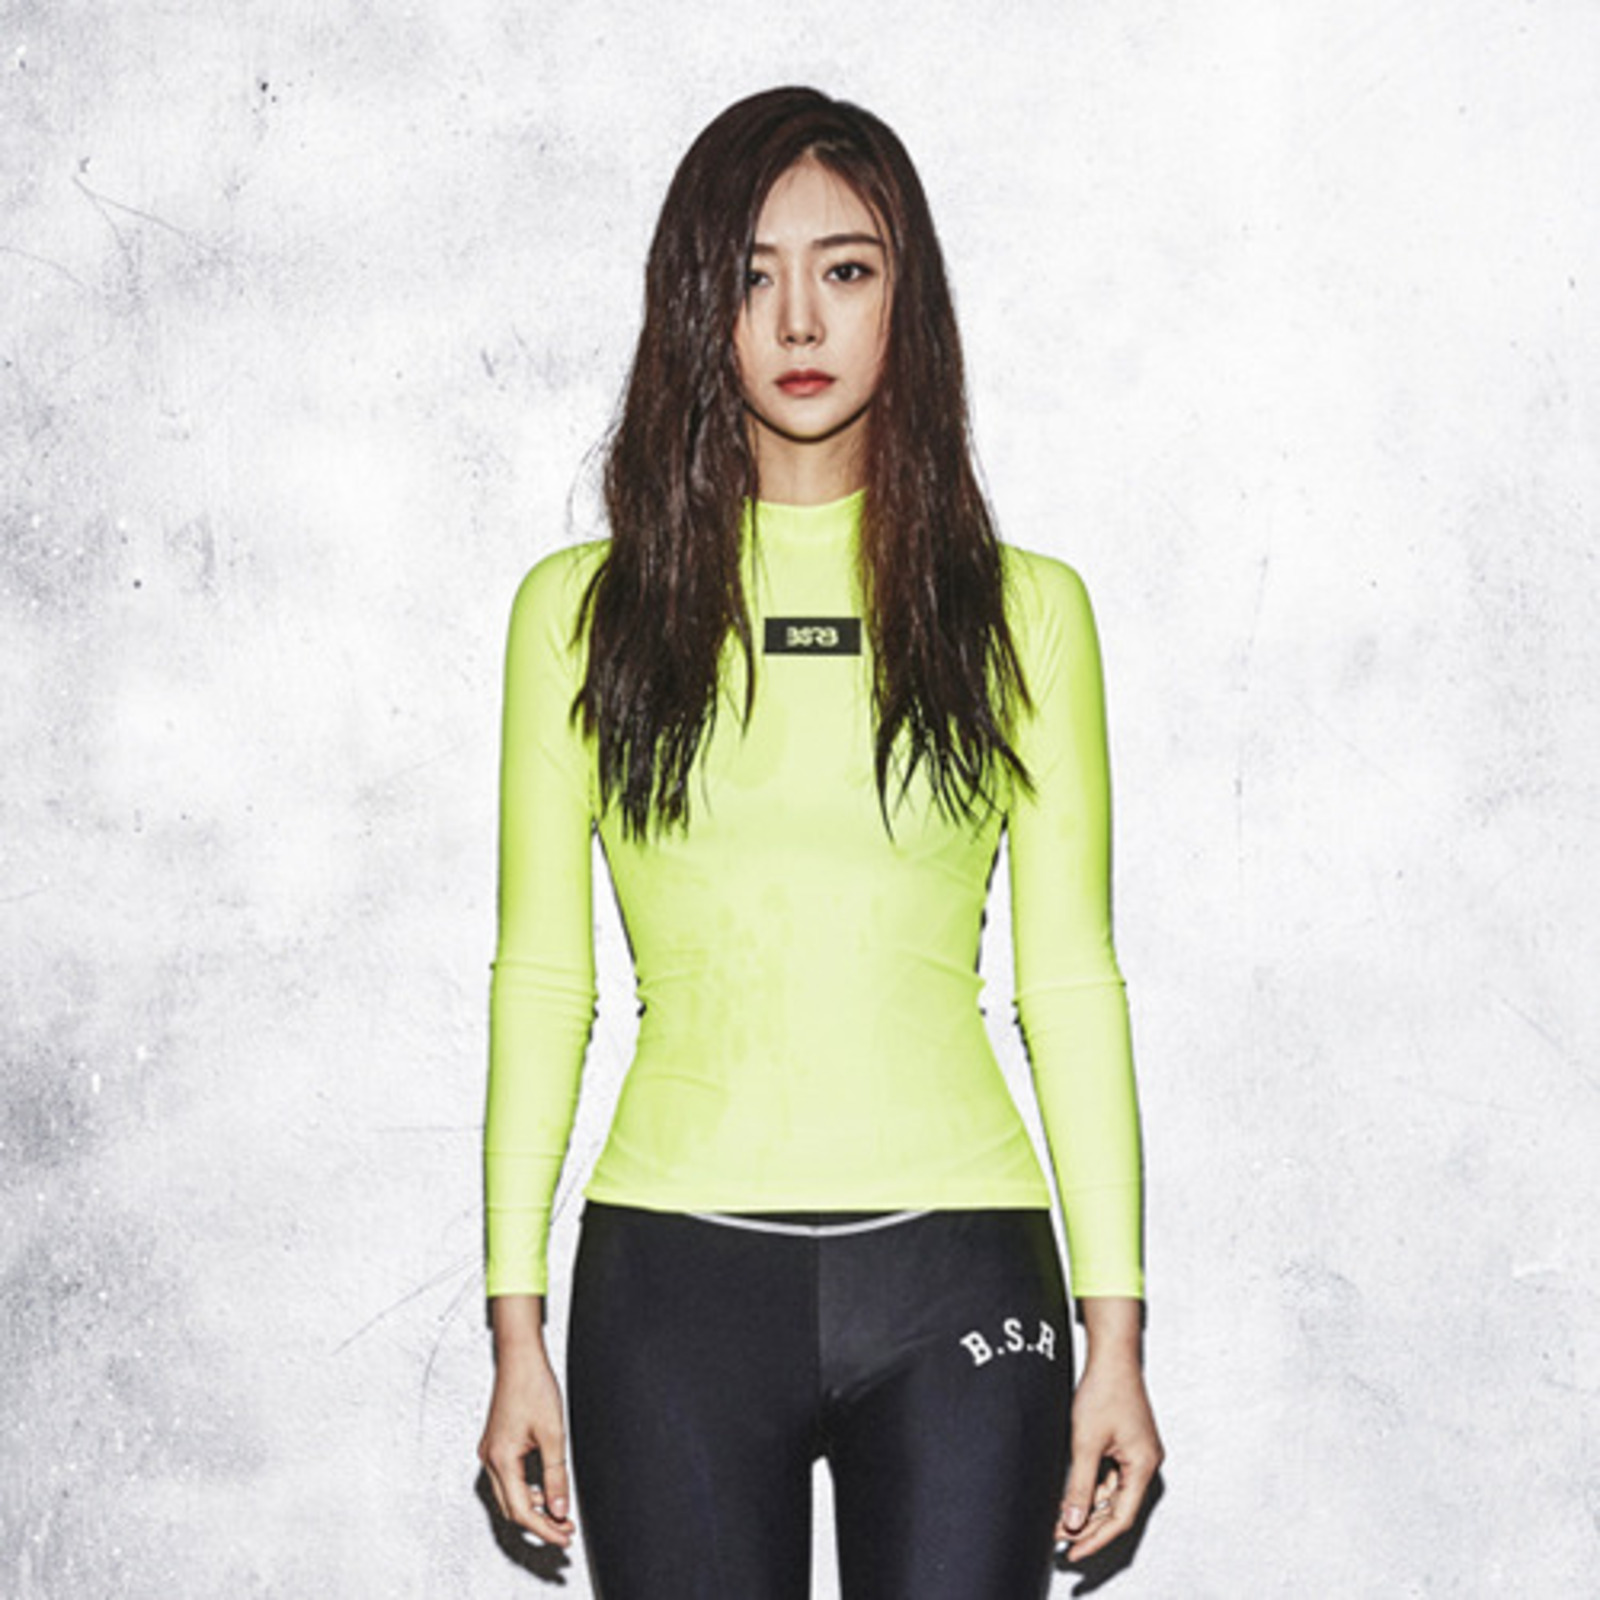 BSRB BOX BR RASH GUARD LIME